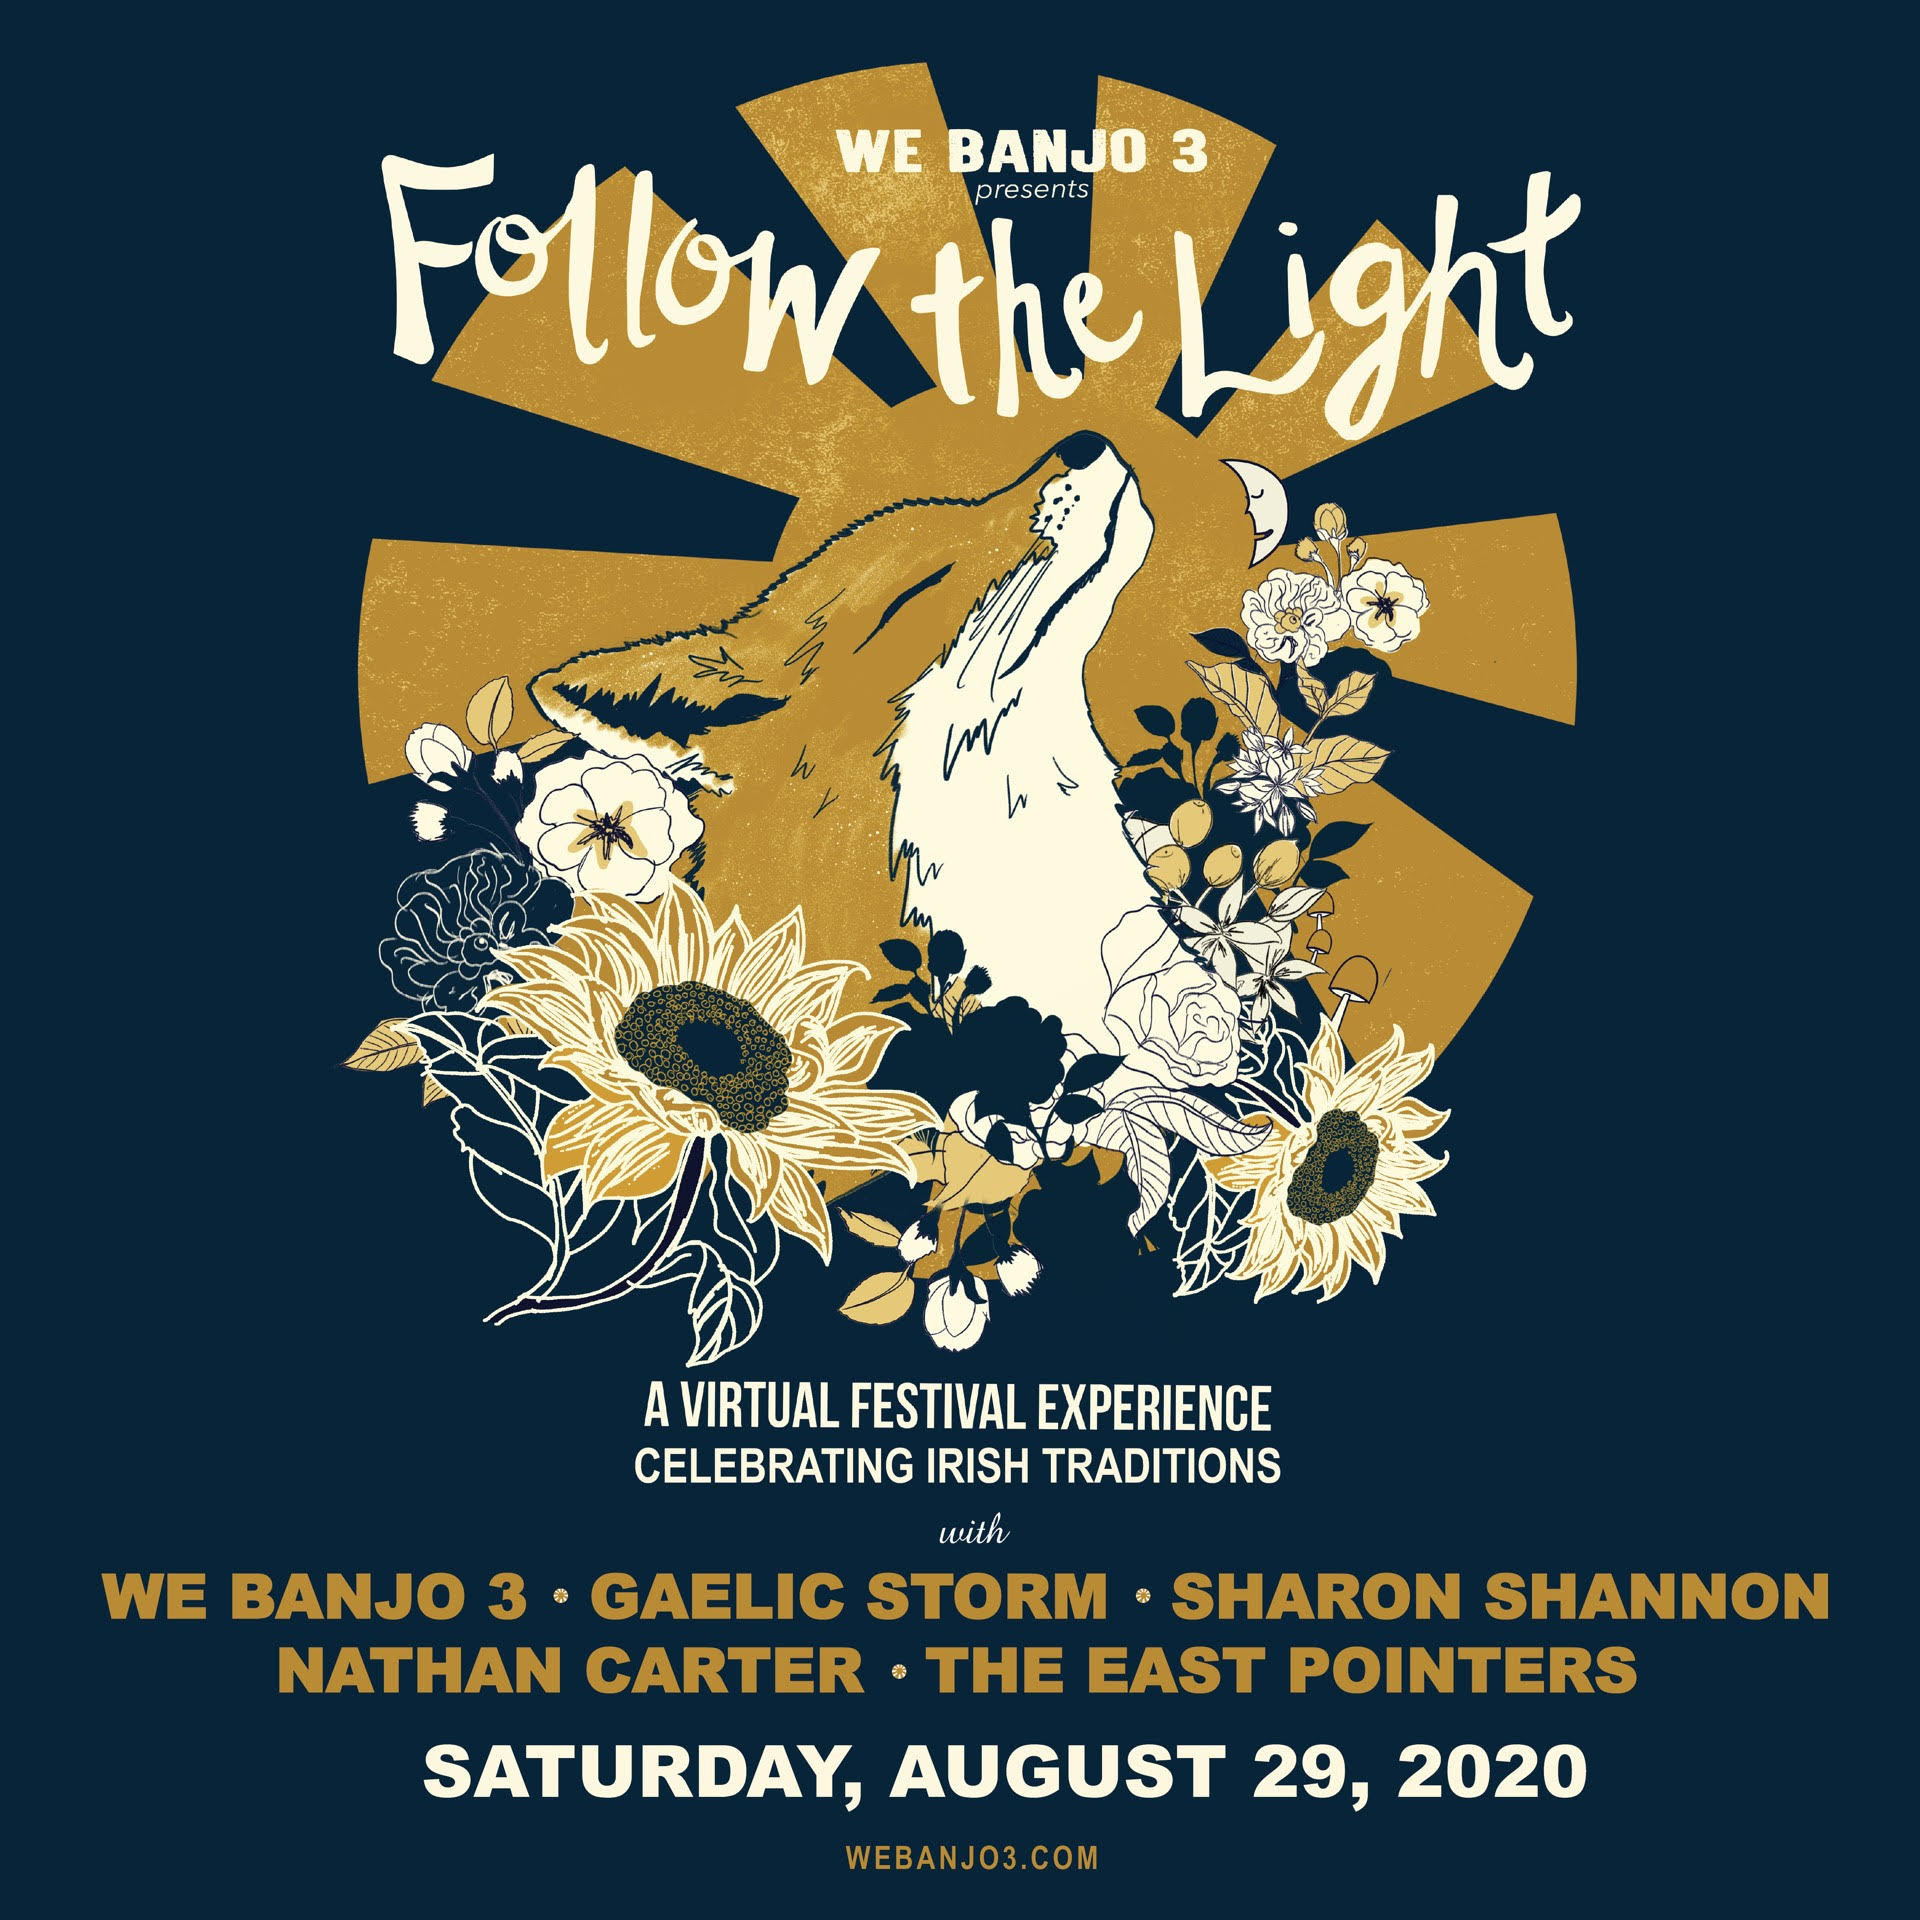 Follow The Light Virtual Music Festival Announced For Aug 29th, 2020